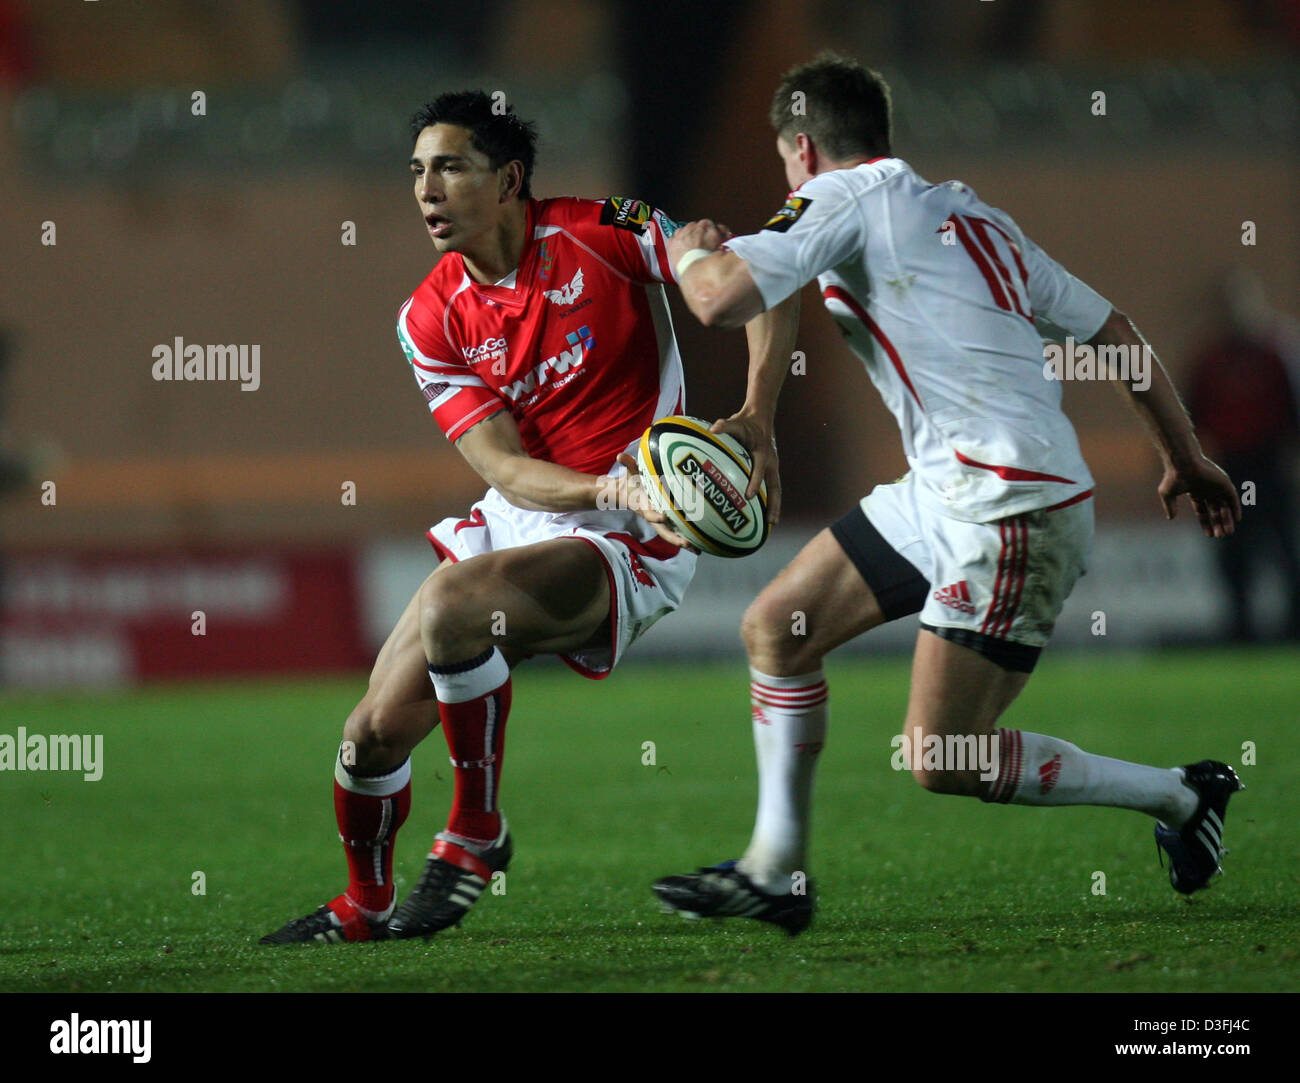 28.11.08. Scarlets v Munster. Magners League Scarlets' Regan King tries to go past Munster's Captain Ronan - Stock Image